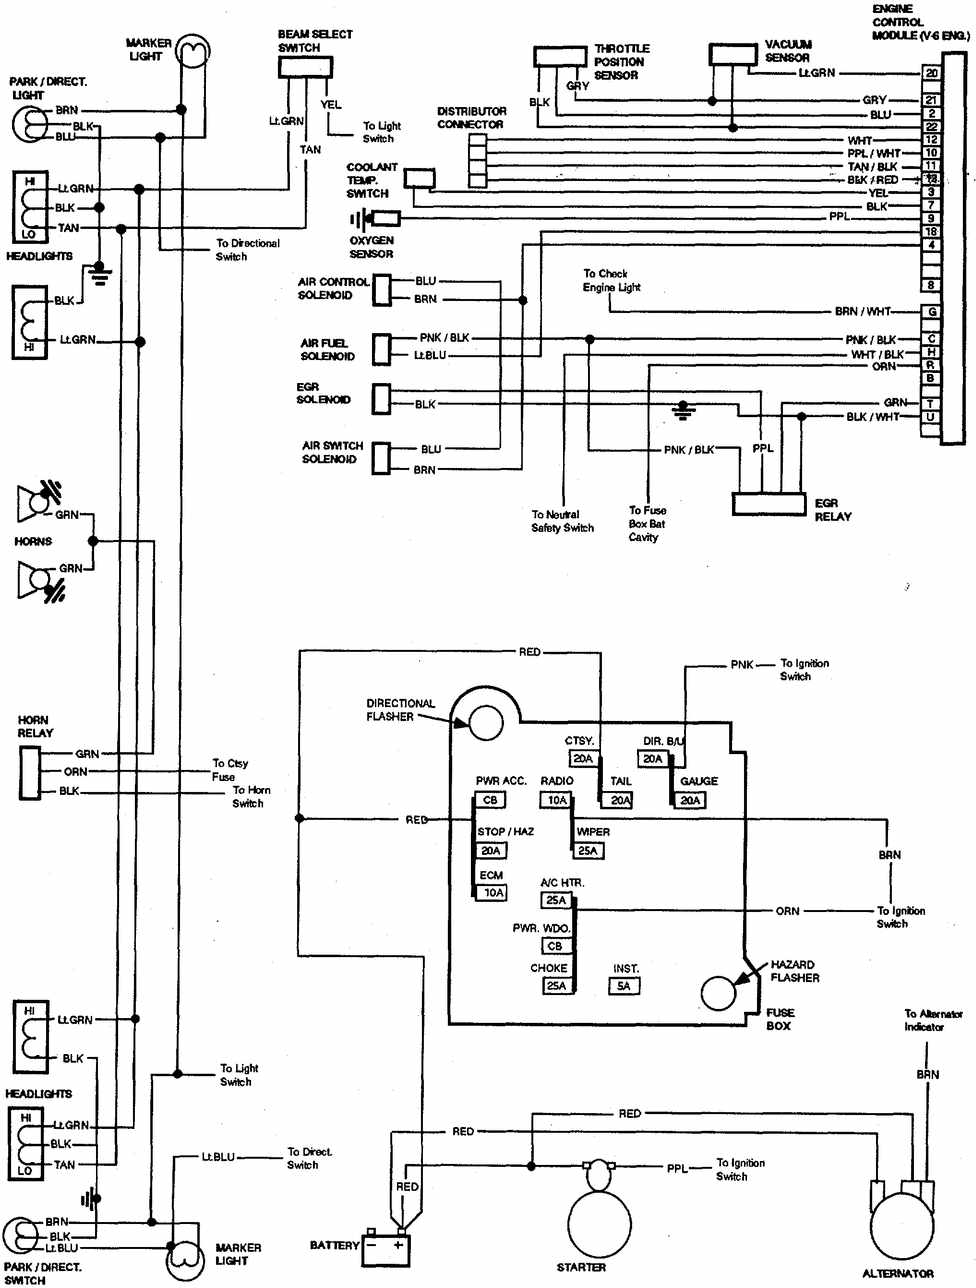 turn signal relay wiring diagram mga 1600 wiring diagram mga wiring